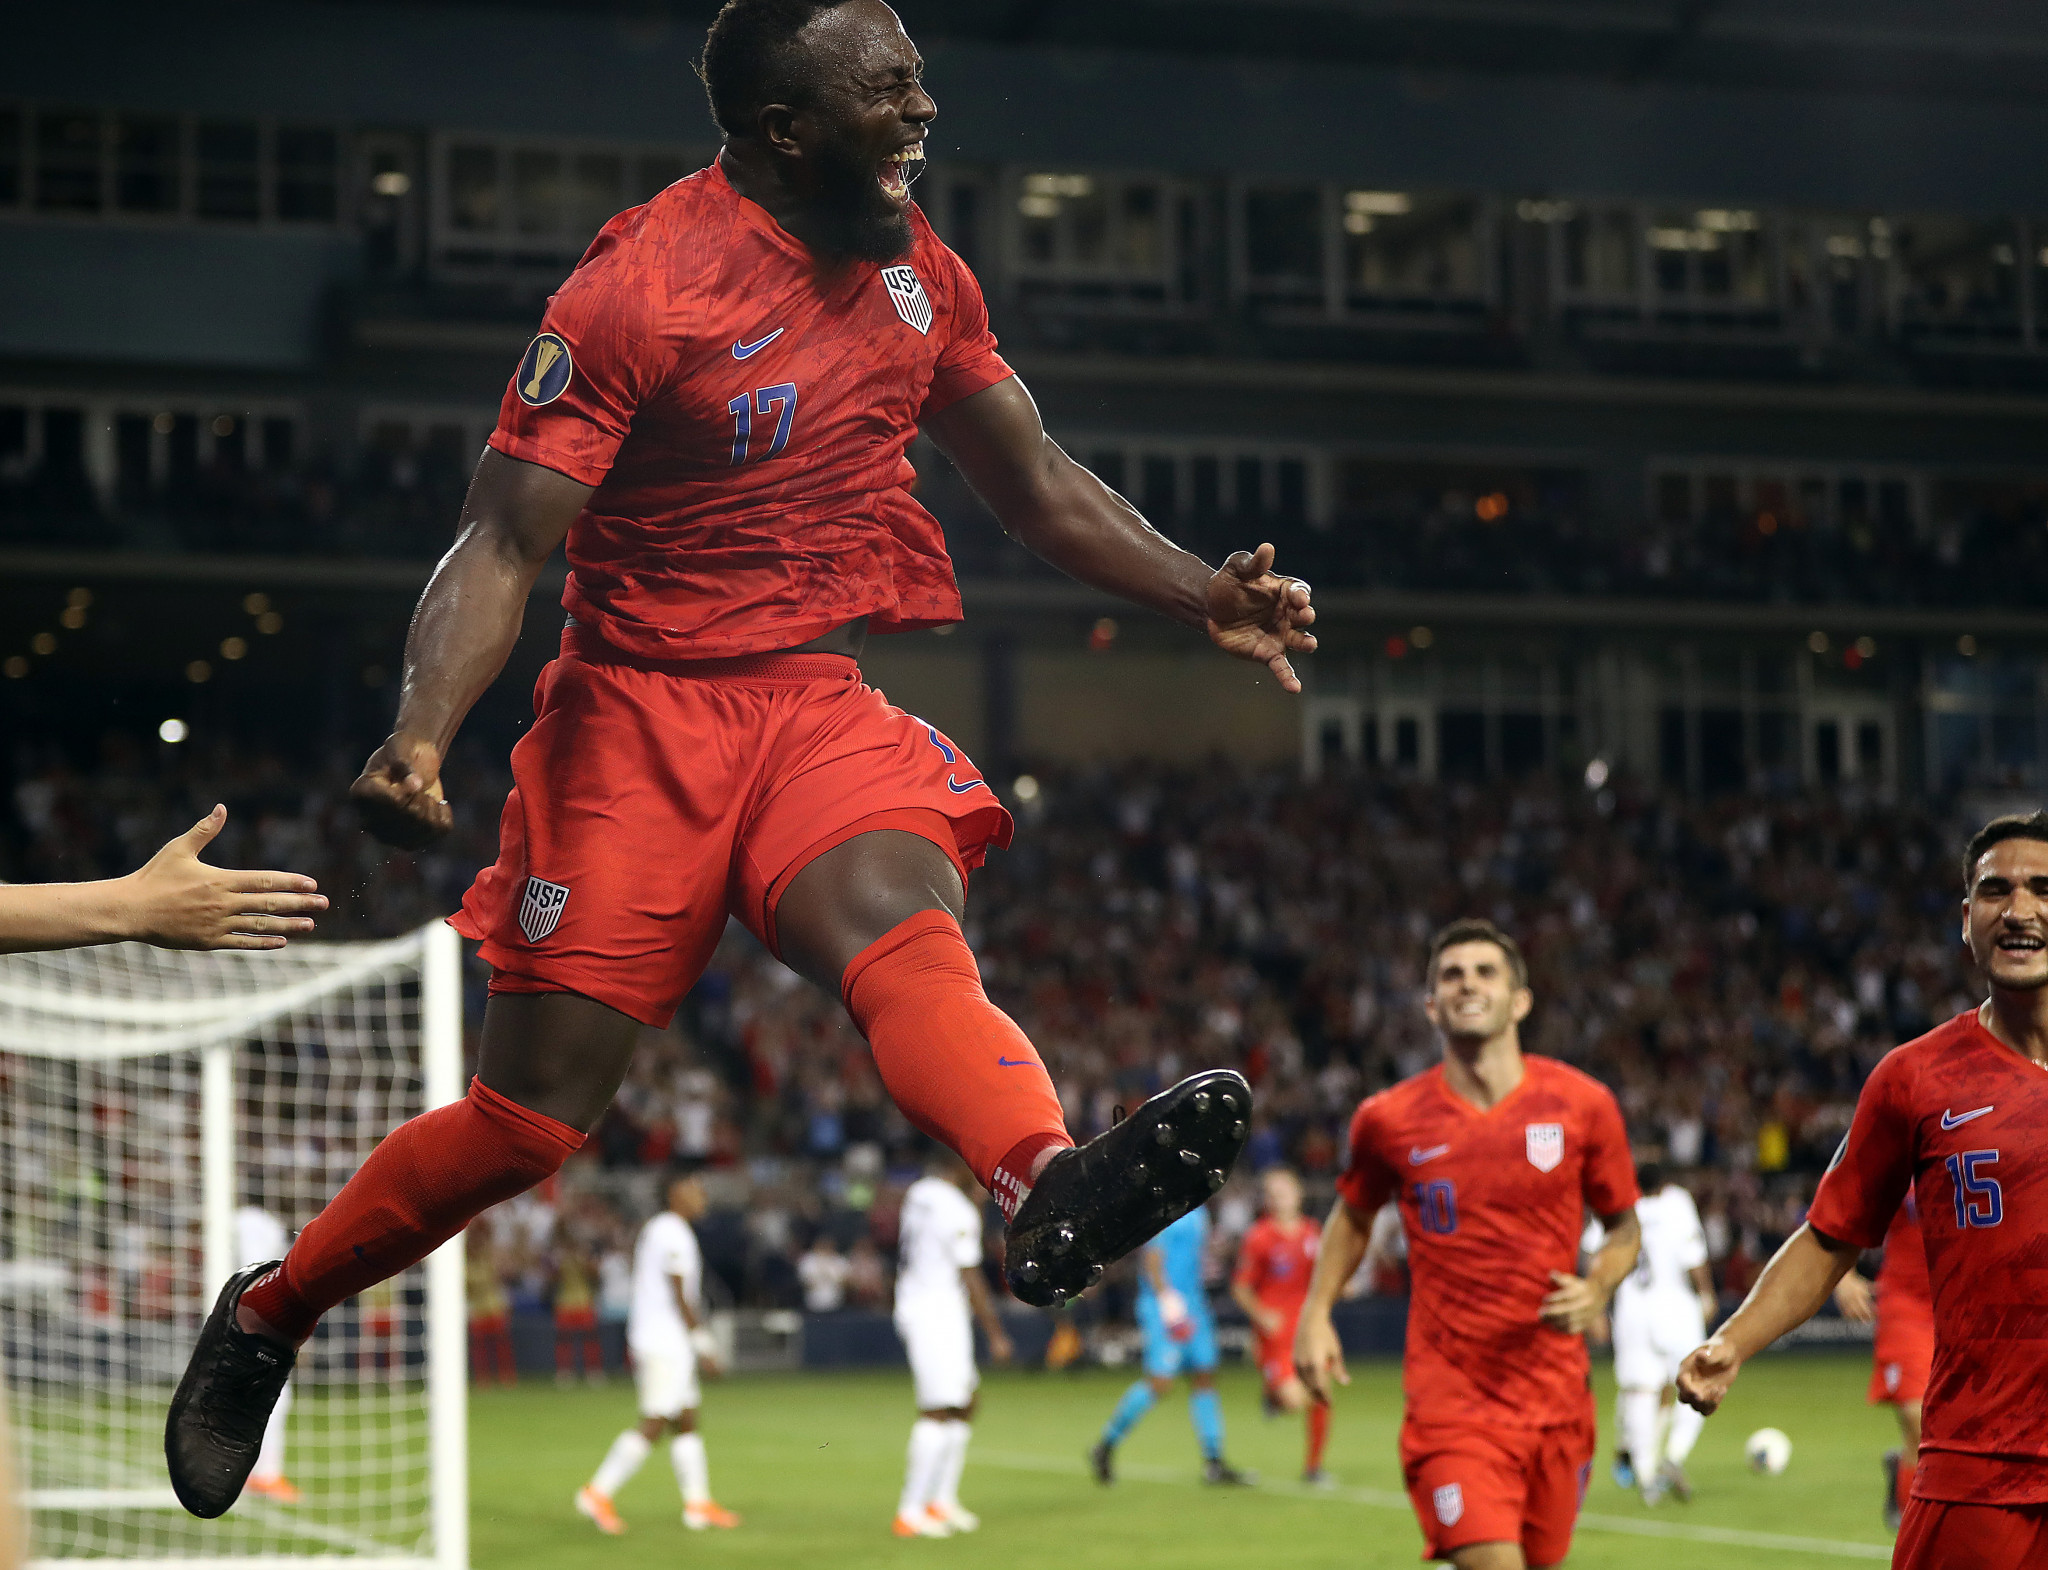 Hosts United States beat Panama 1-0 to clinch first place in Group D at the CONCACAF Gold Cup ©Getty Images